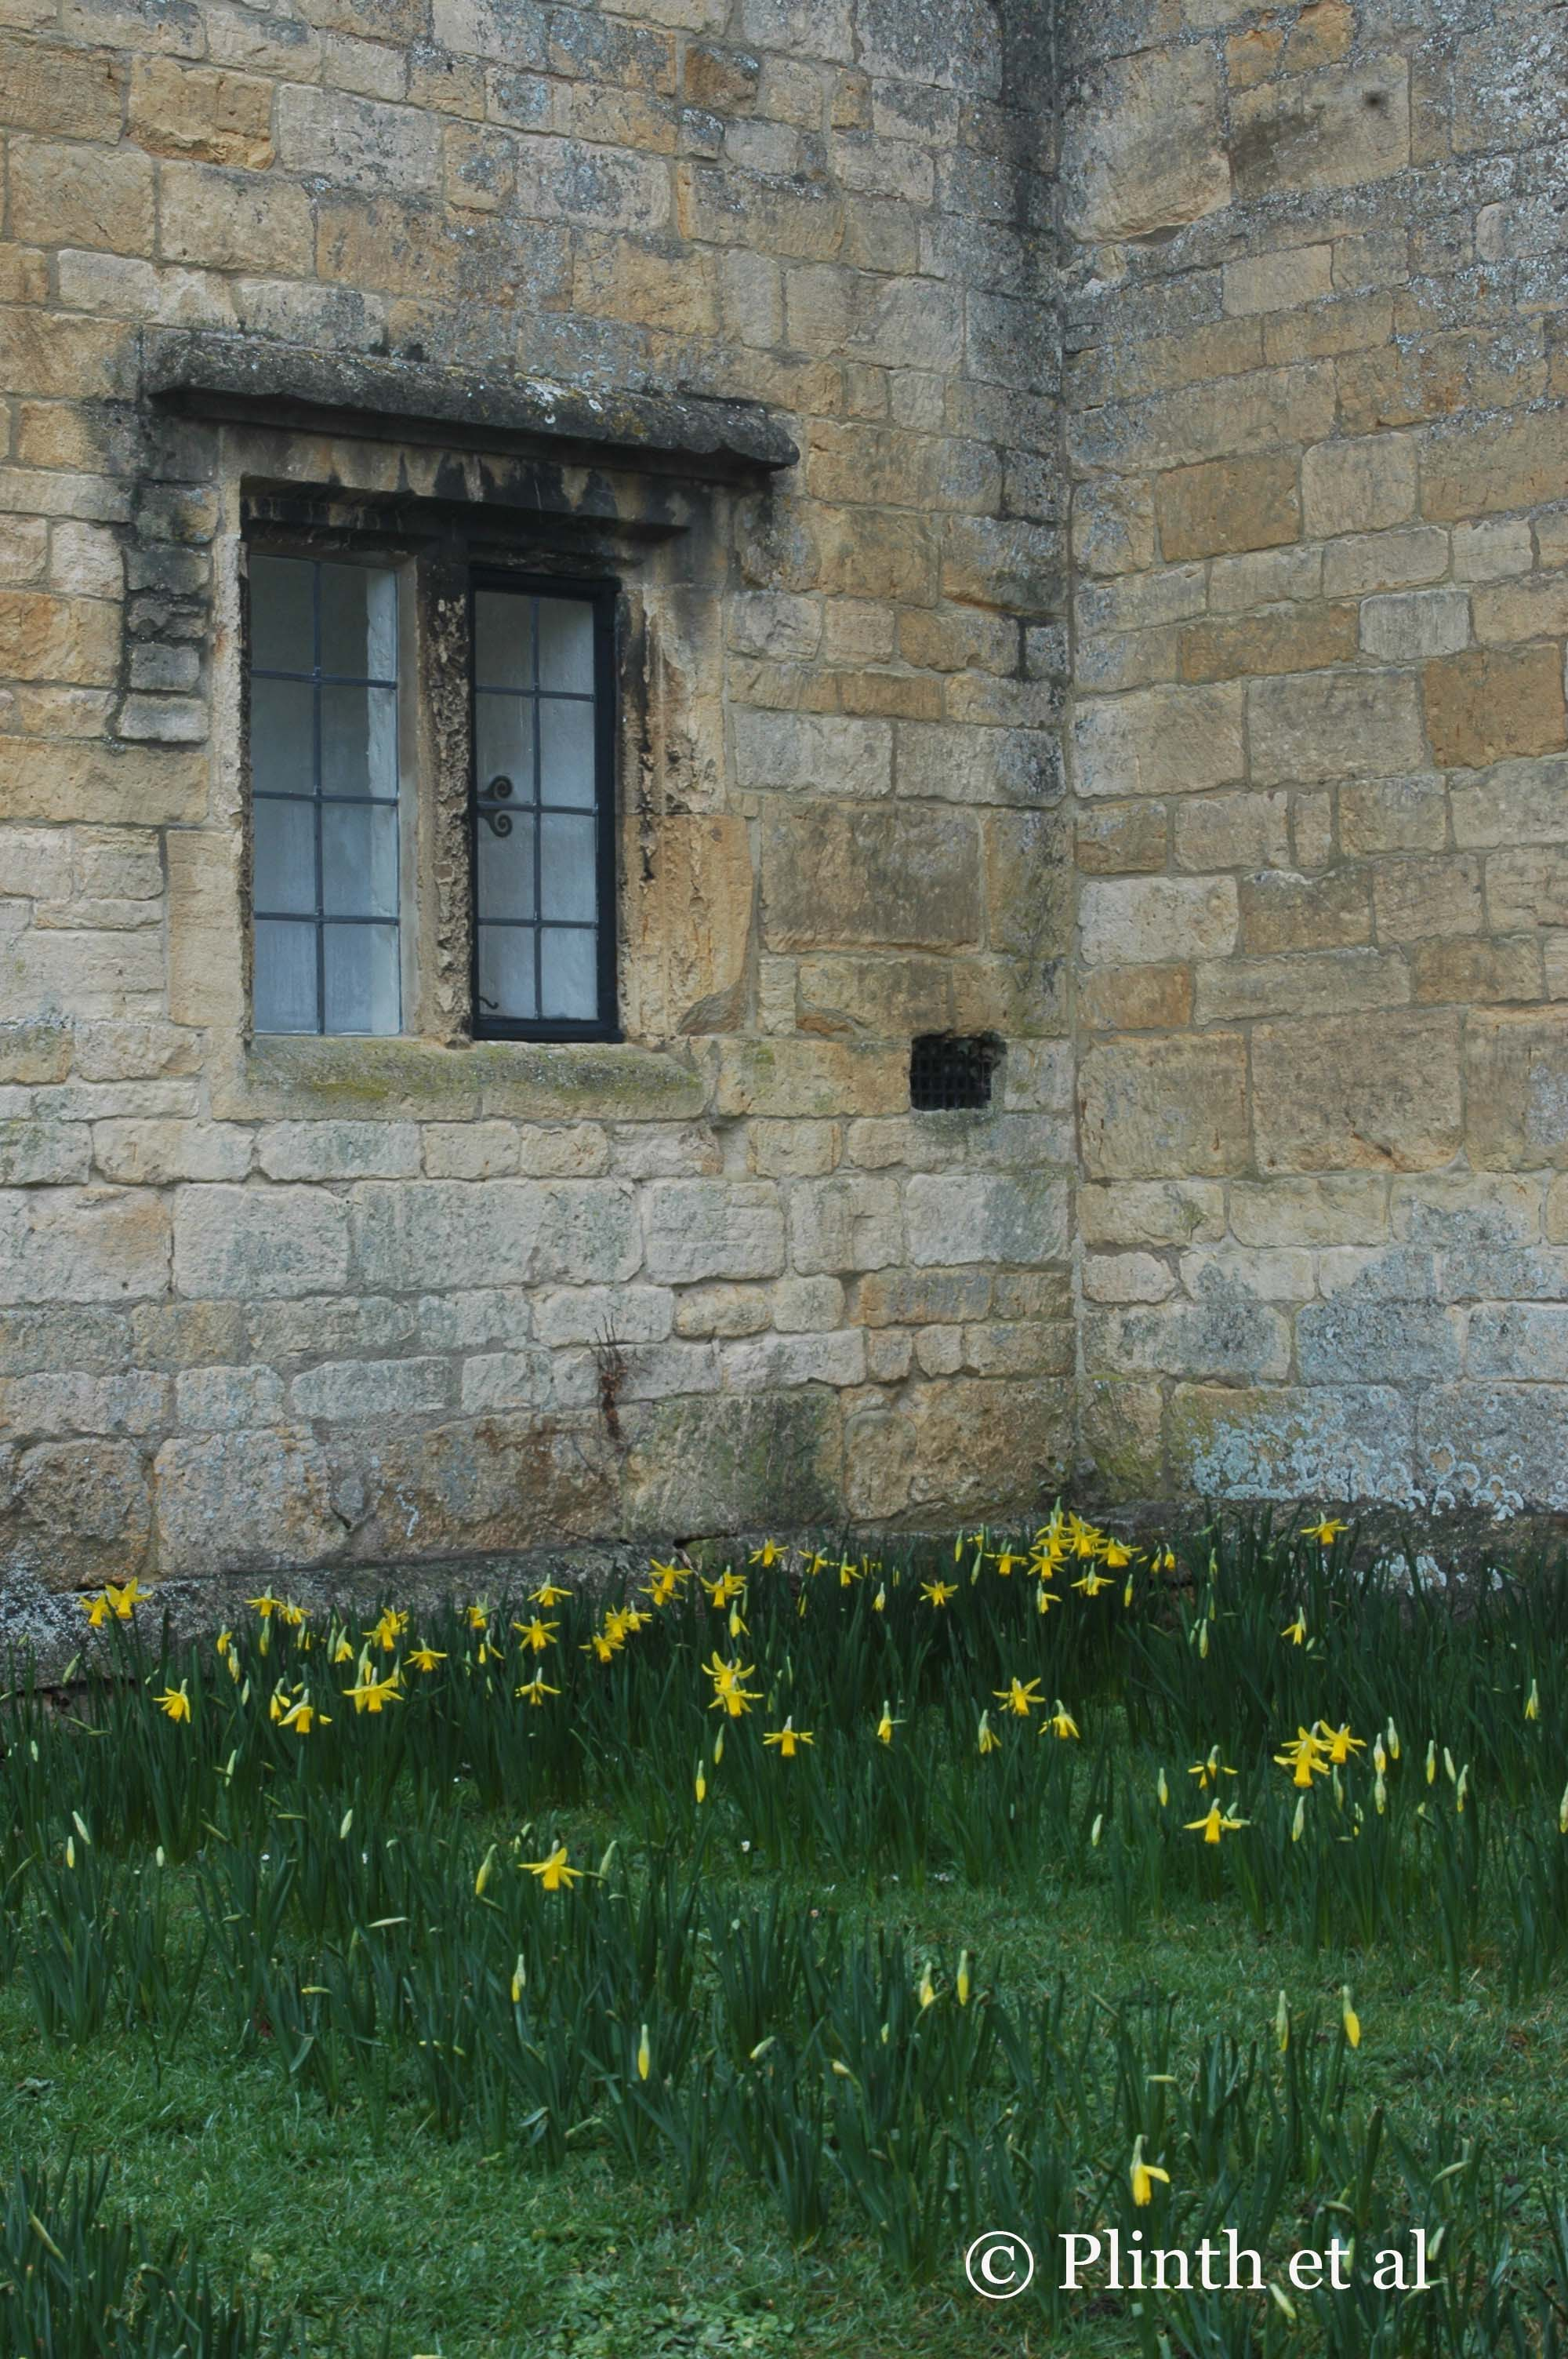 In this warmer corner of the house is the surprise sight of narcissi flowering. The neutral colors of the stone wall flatter the yellow flowers and green lawn.